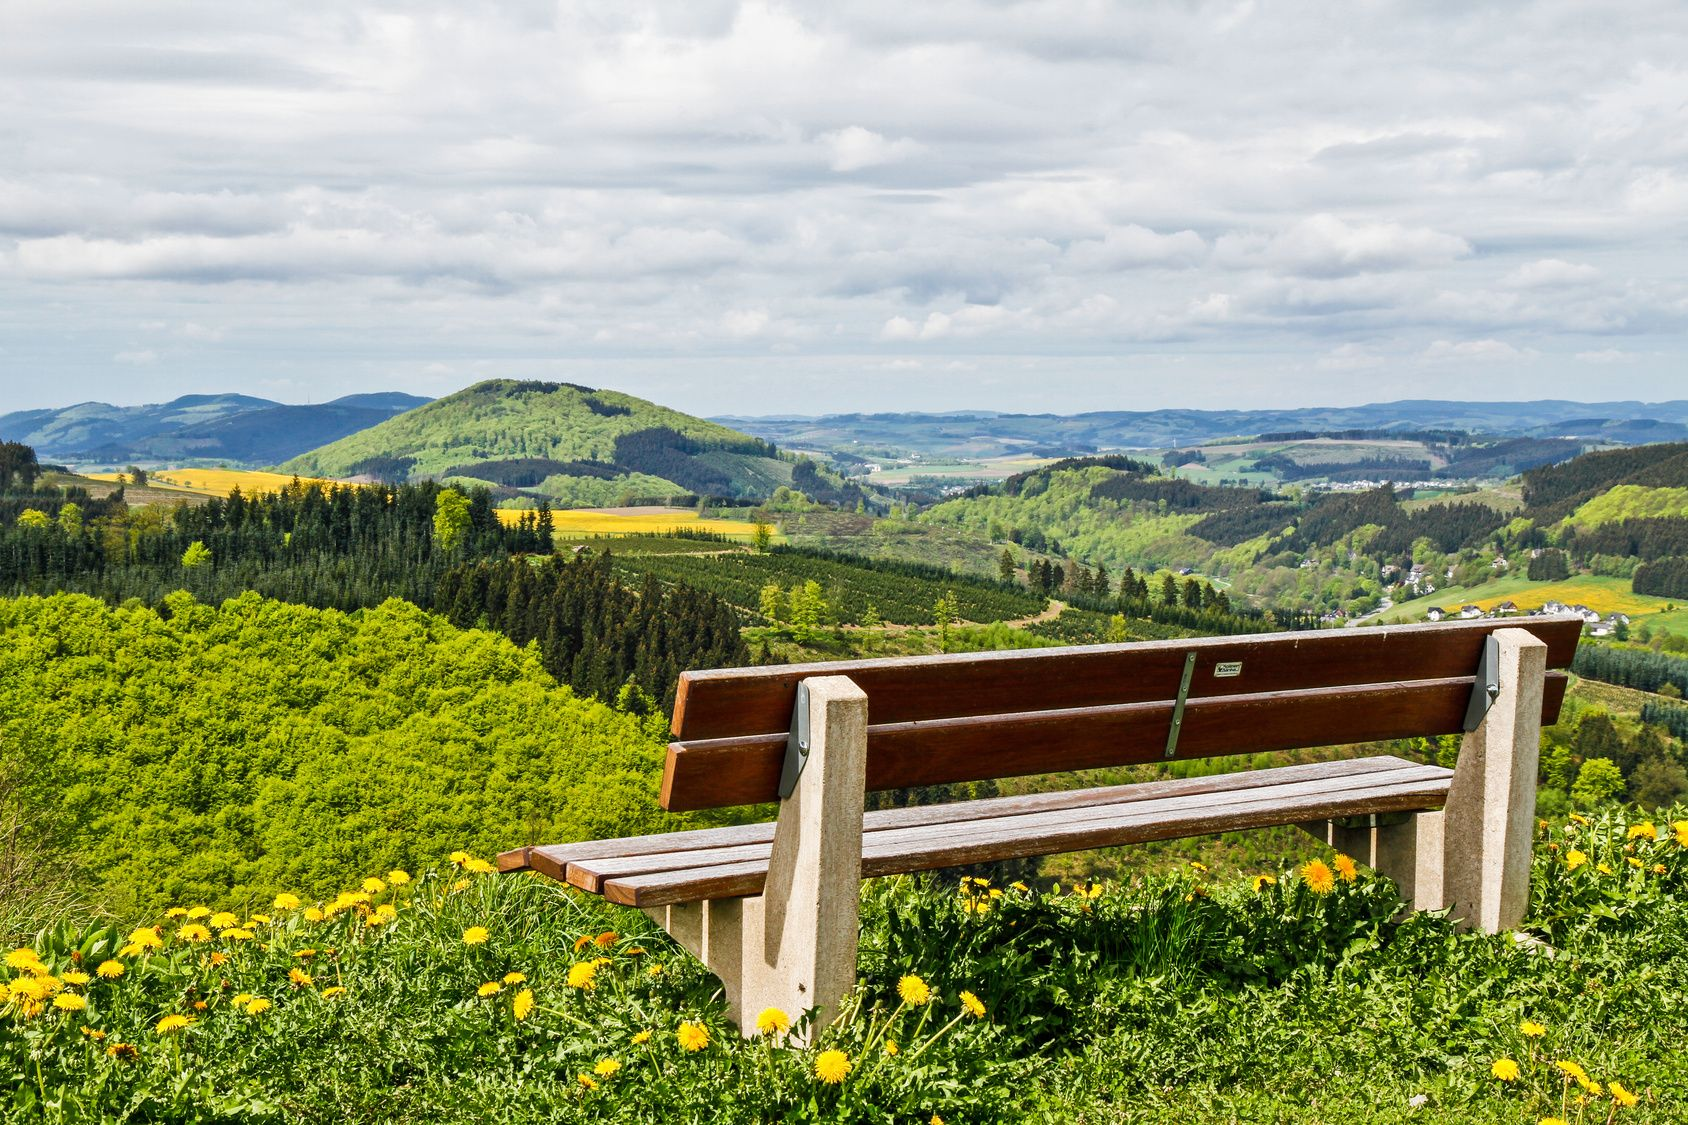 Magnificent view over the Lenne valley in the Sauerland region